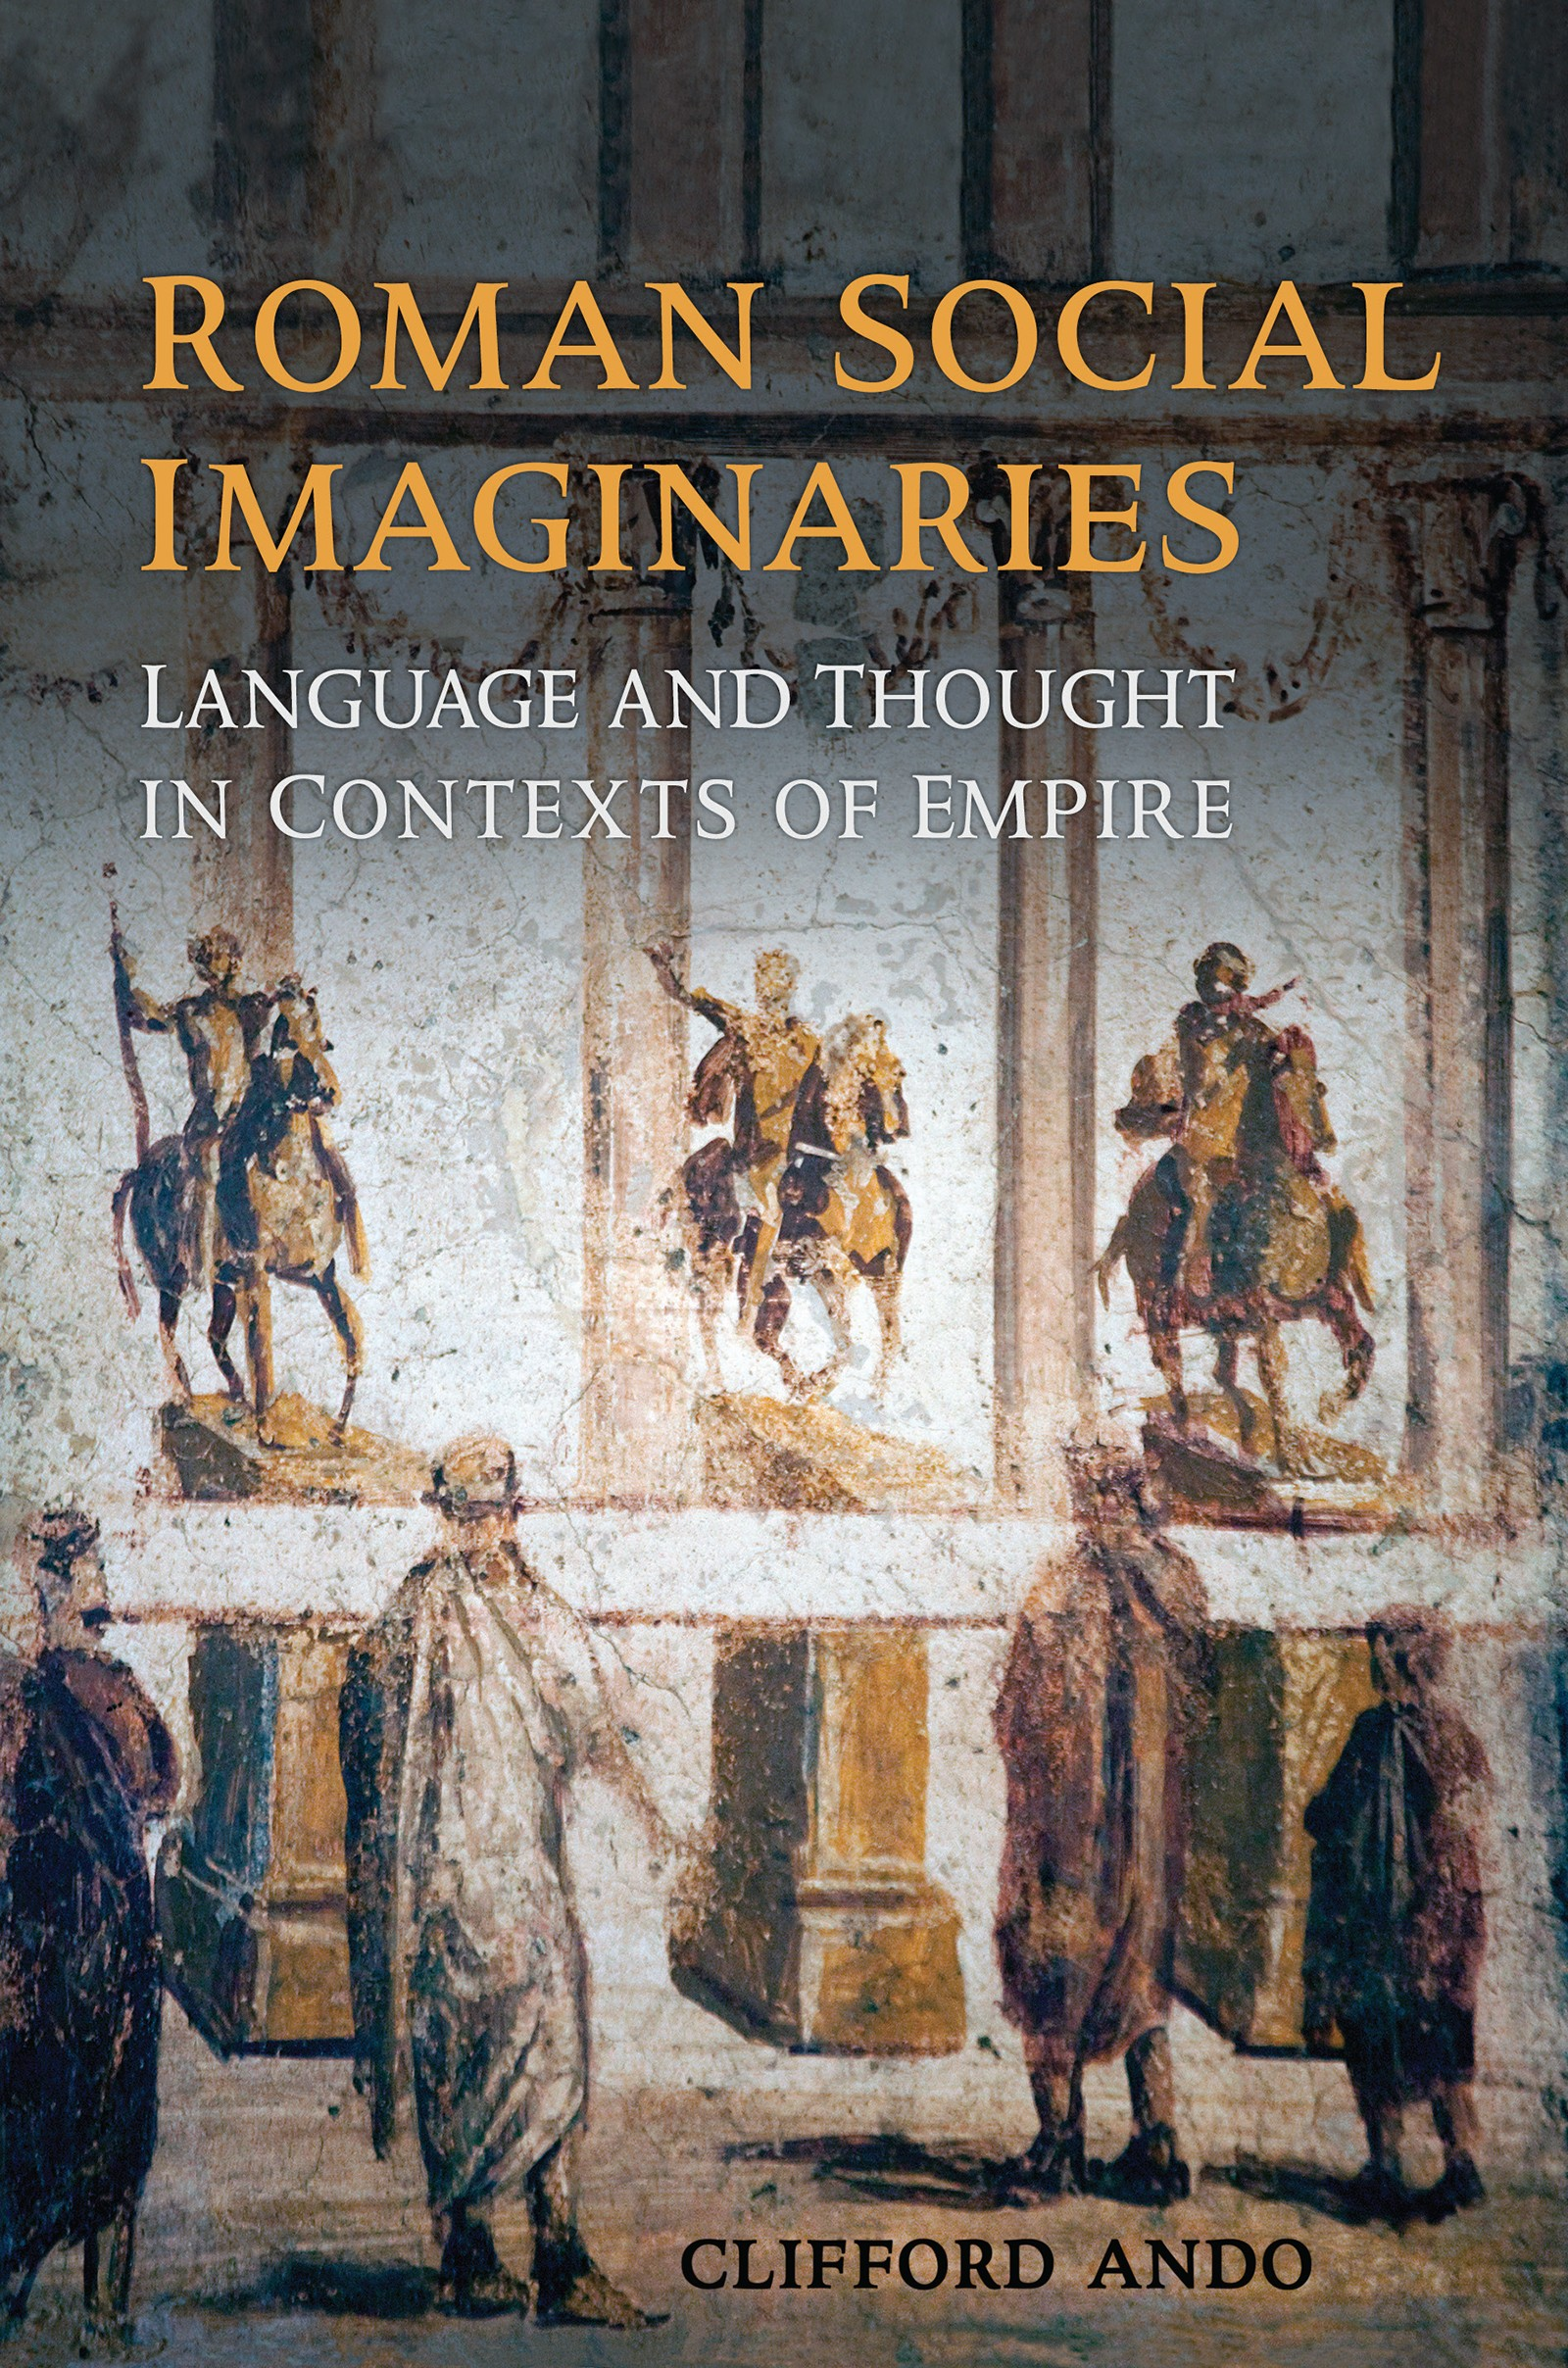 Roman Social Imaginaries. Language and thought in contexts of empire